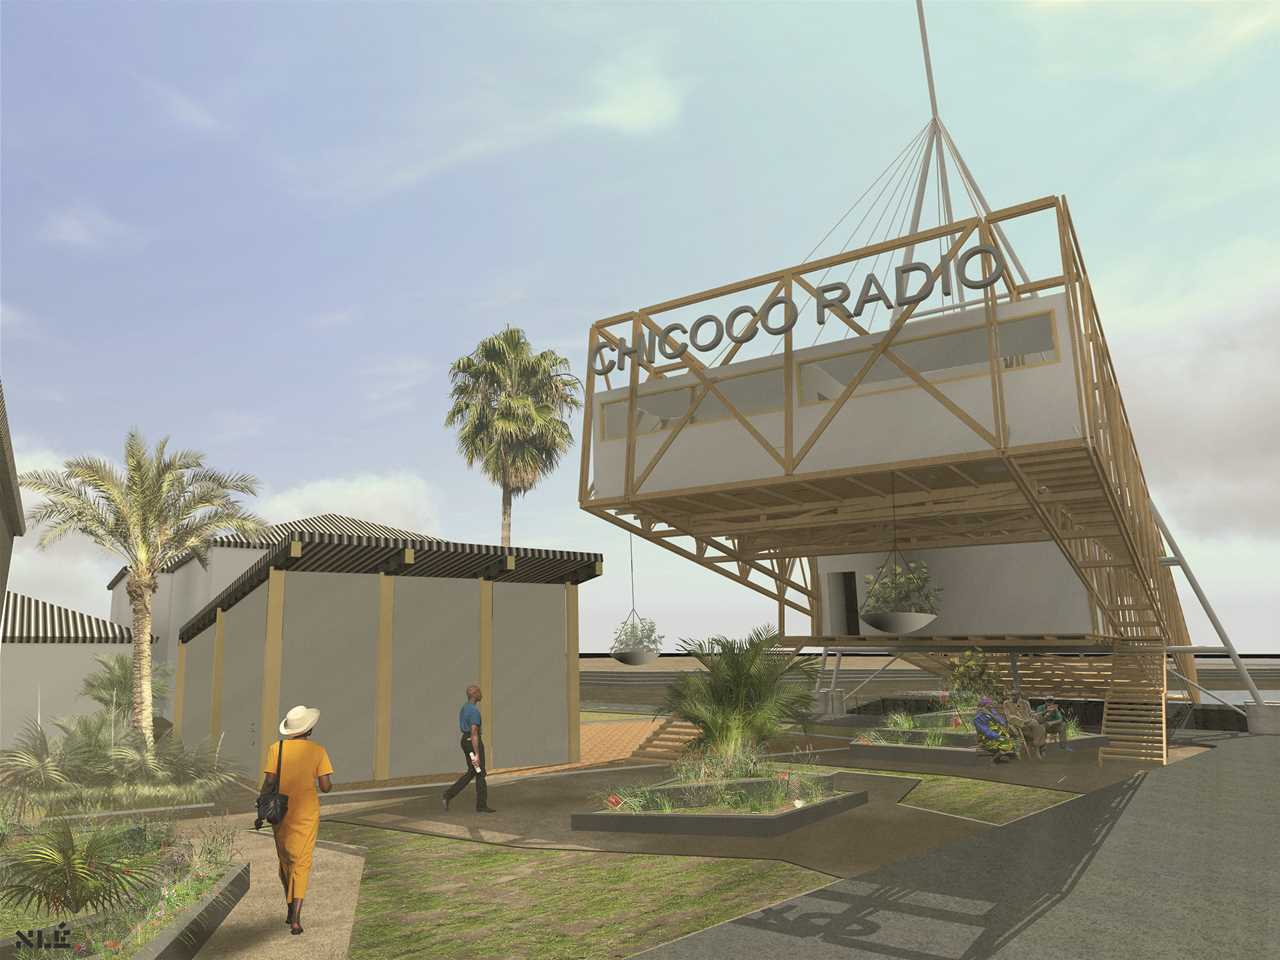 Project entry 2014 Africa Middle East - Chicoco Radio: Community building designed for …